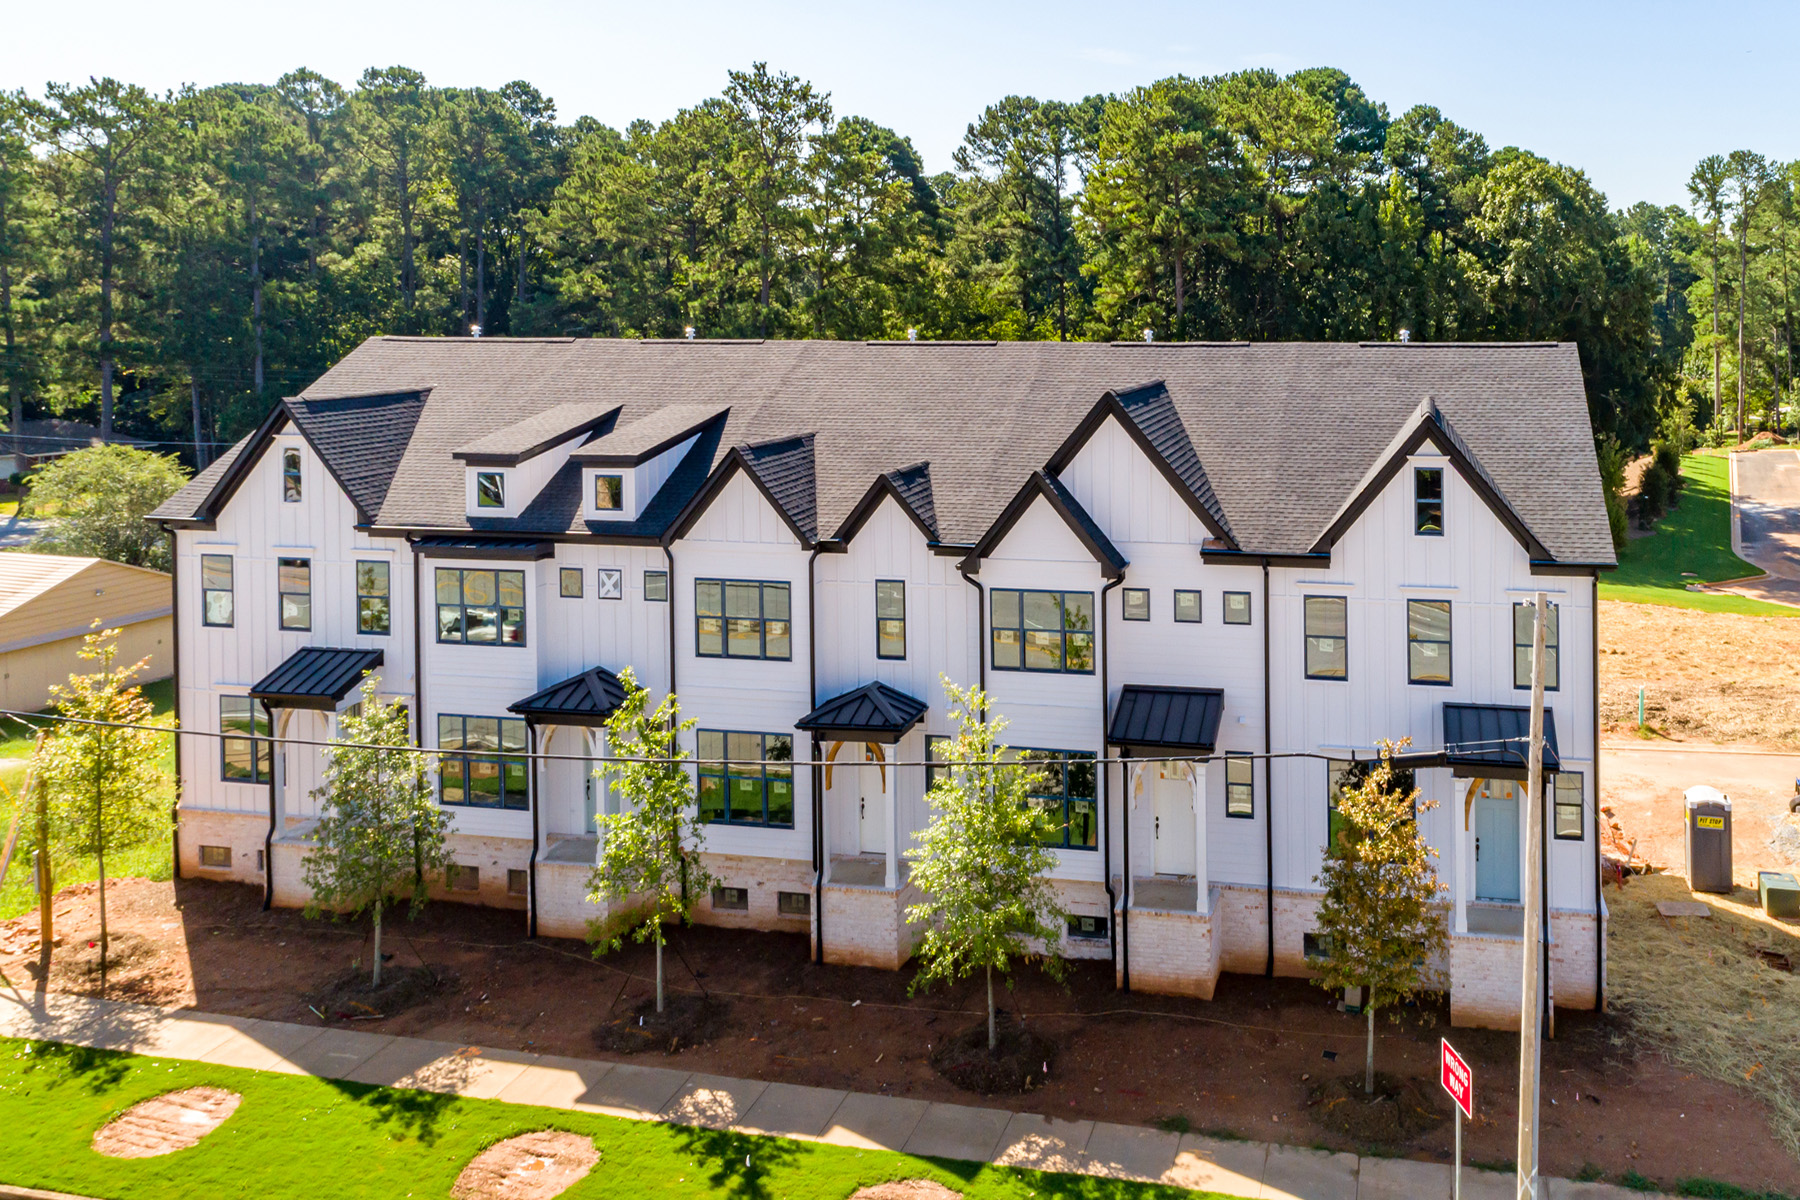 townhouses のために 売買 アット Beautiful New Townhomes Located In Desirable Decatur 2729 Lawrenceville Highway No. 12, Decatur, ジョージア 30033 アメリカ